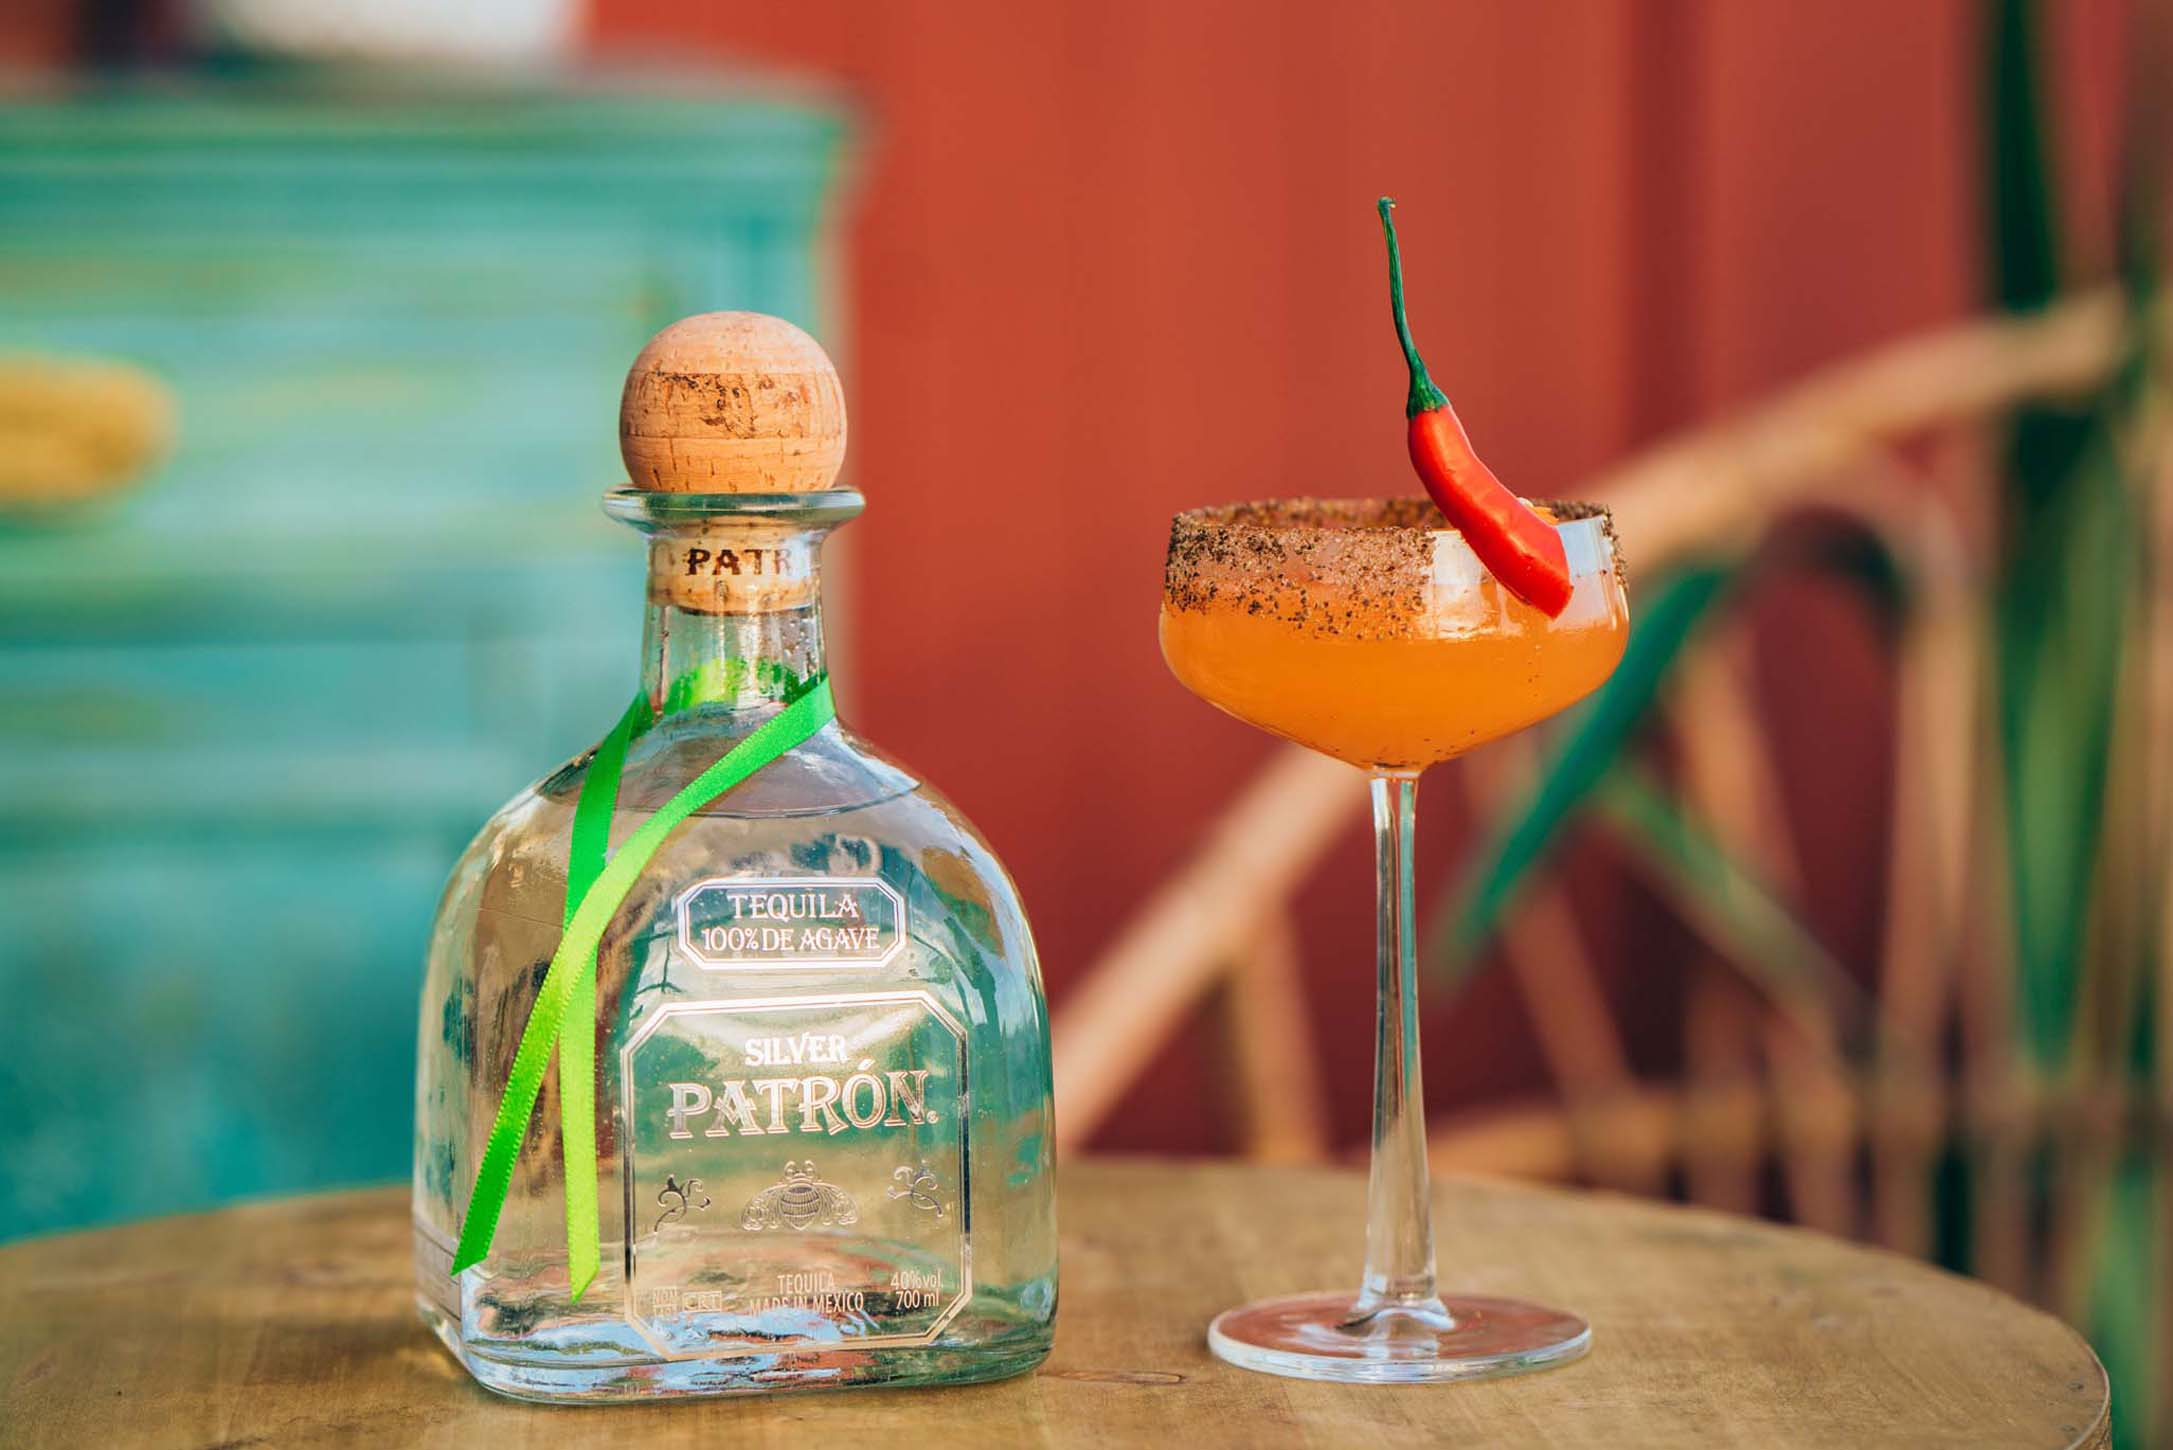 La Chispa del Patron cocktail